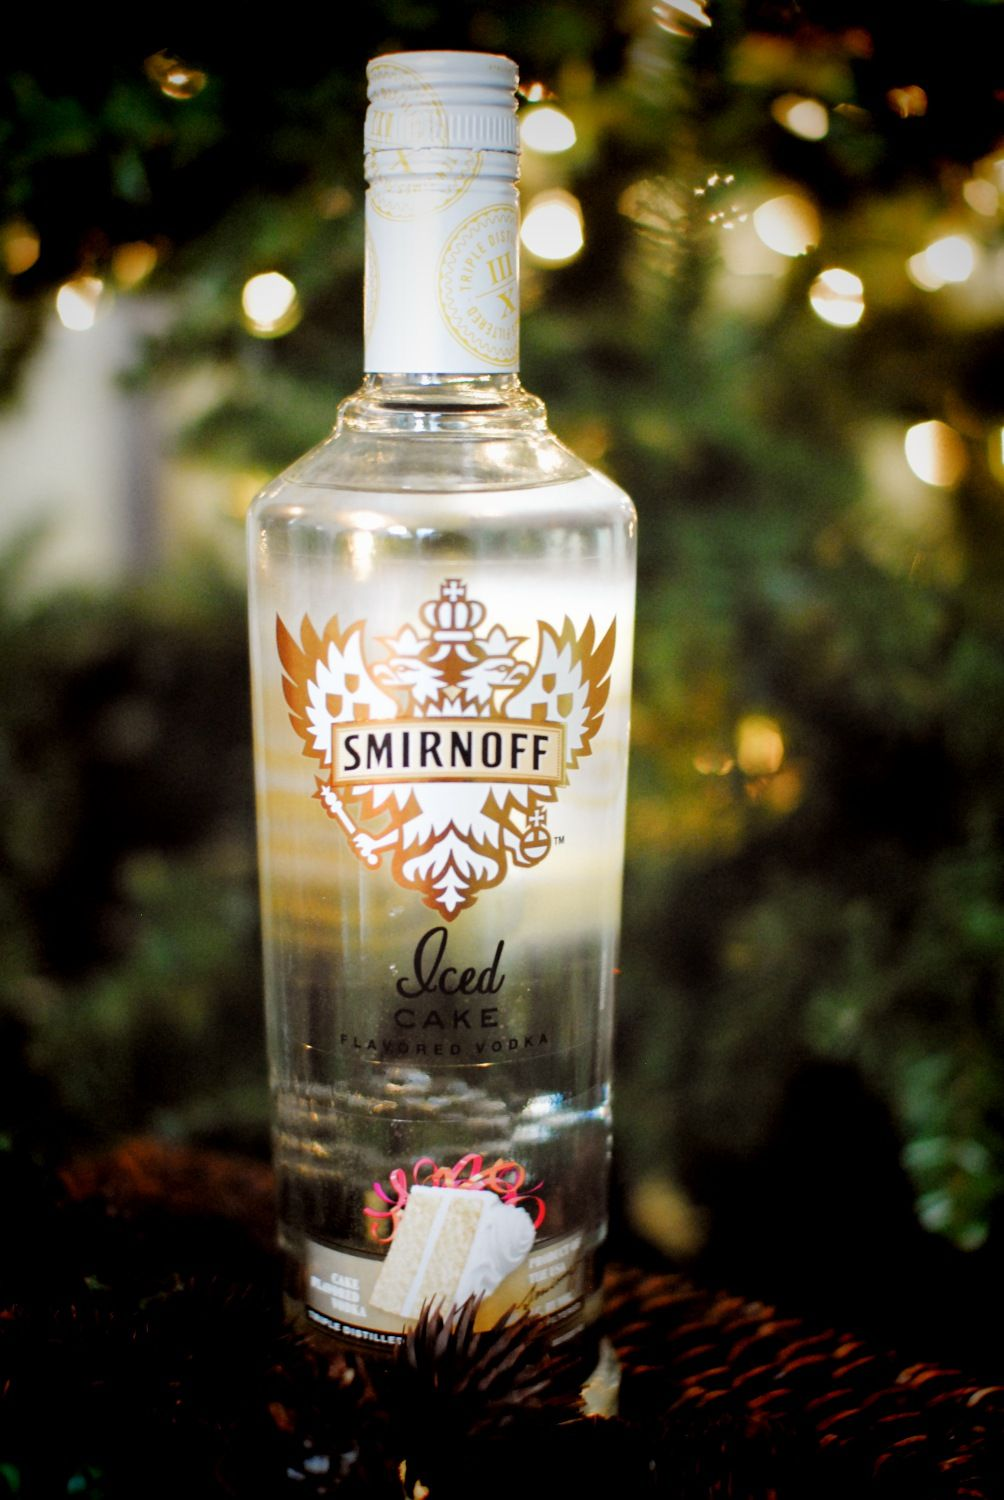 Smirnoff Iced Cake flavored vodka A simple mix of the ginger